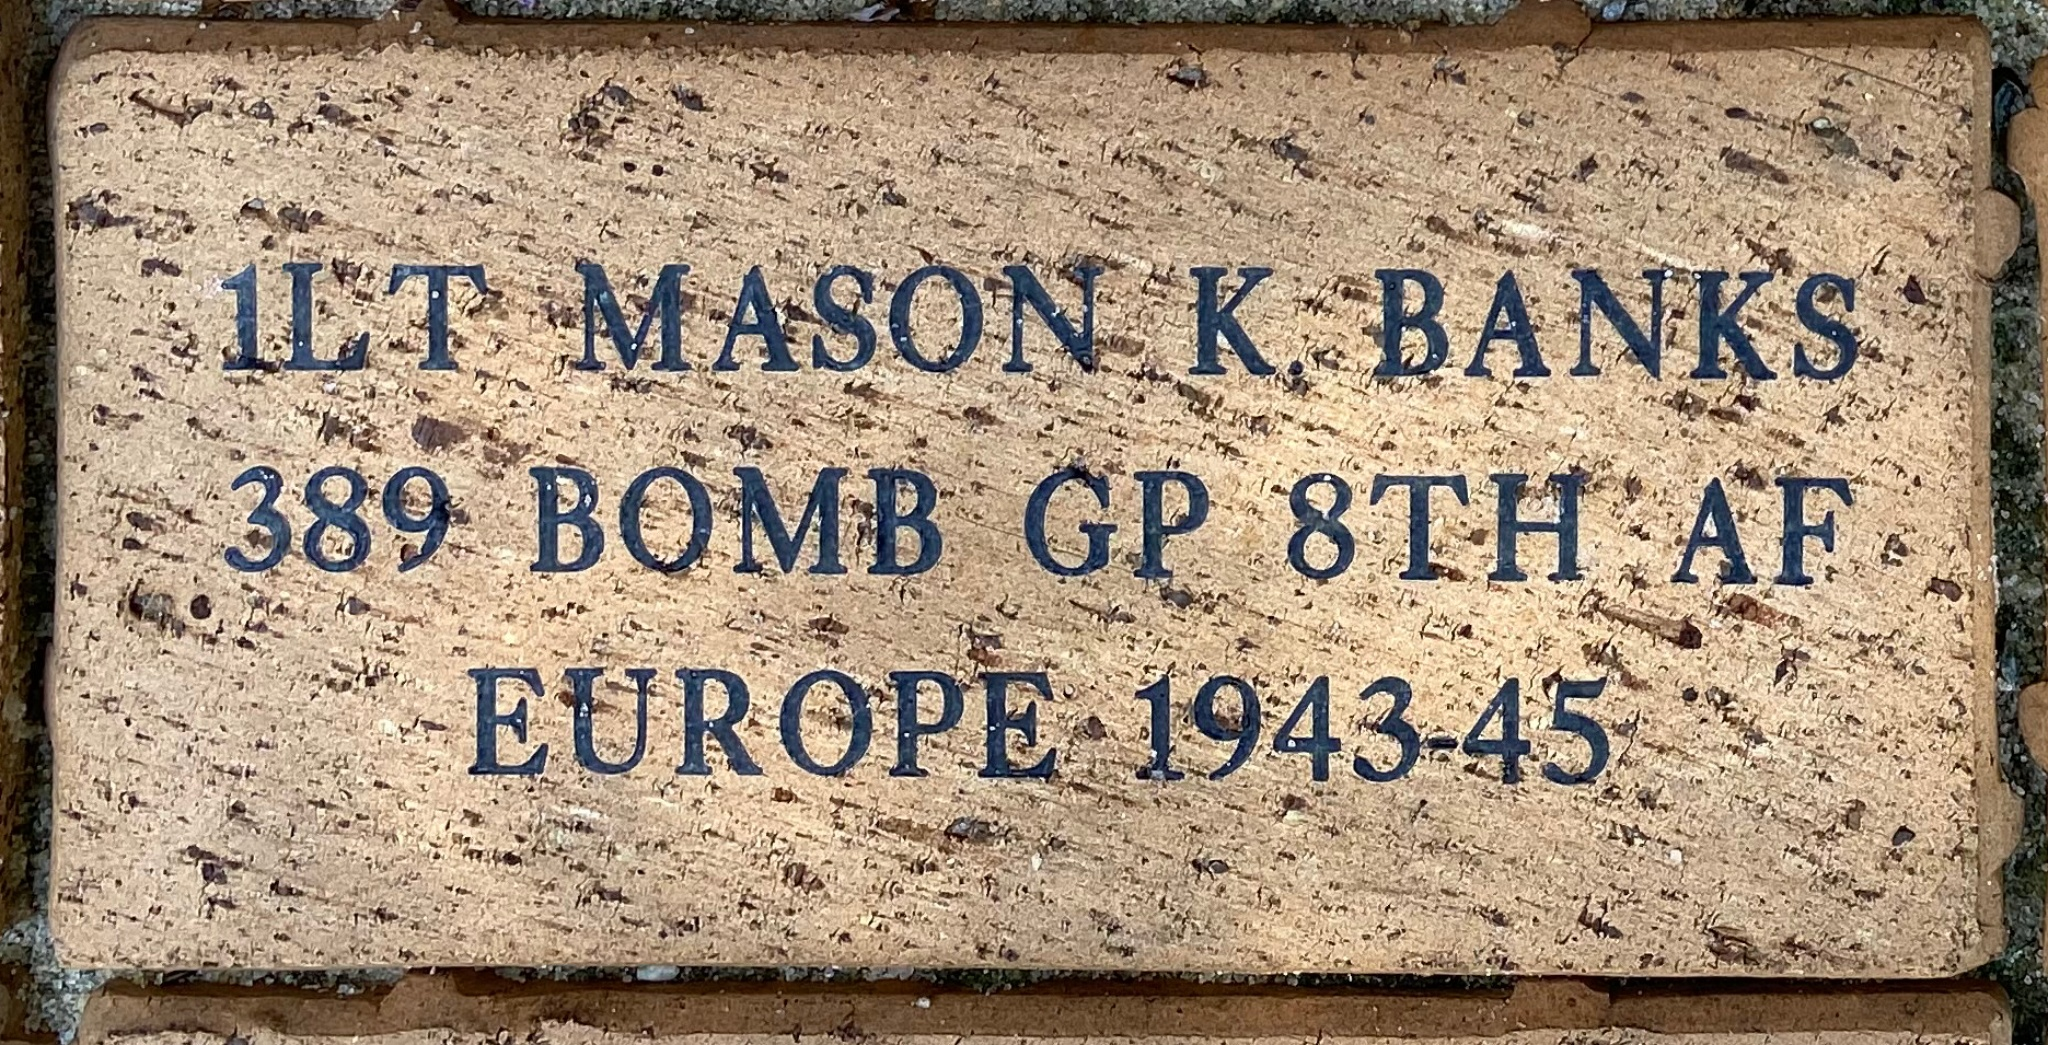 1LT MASON K. BANKS 389 BOMB GP 8TH AF EUROPE 1943-45